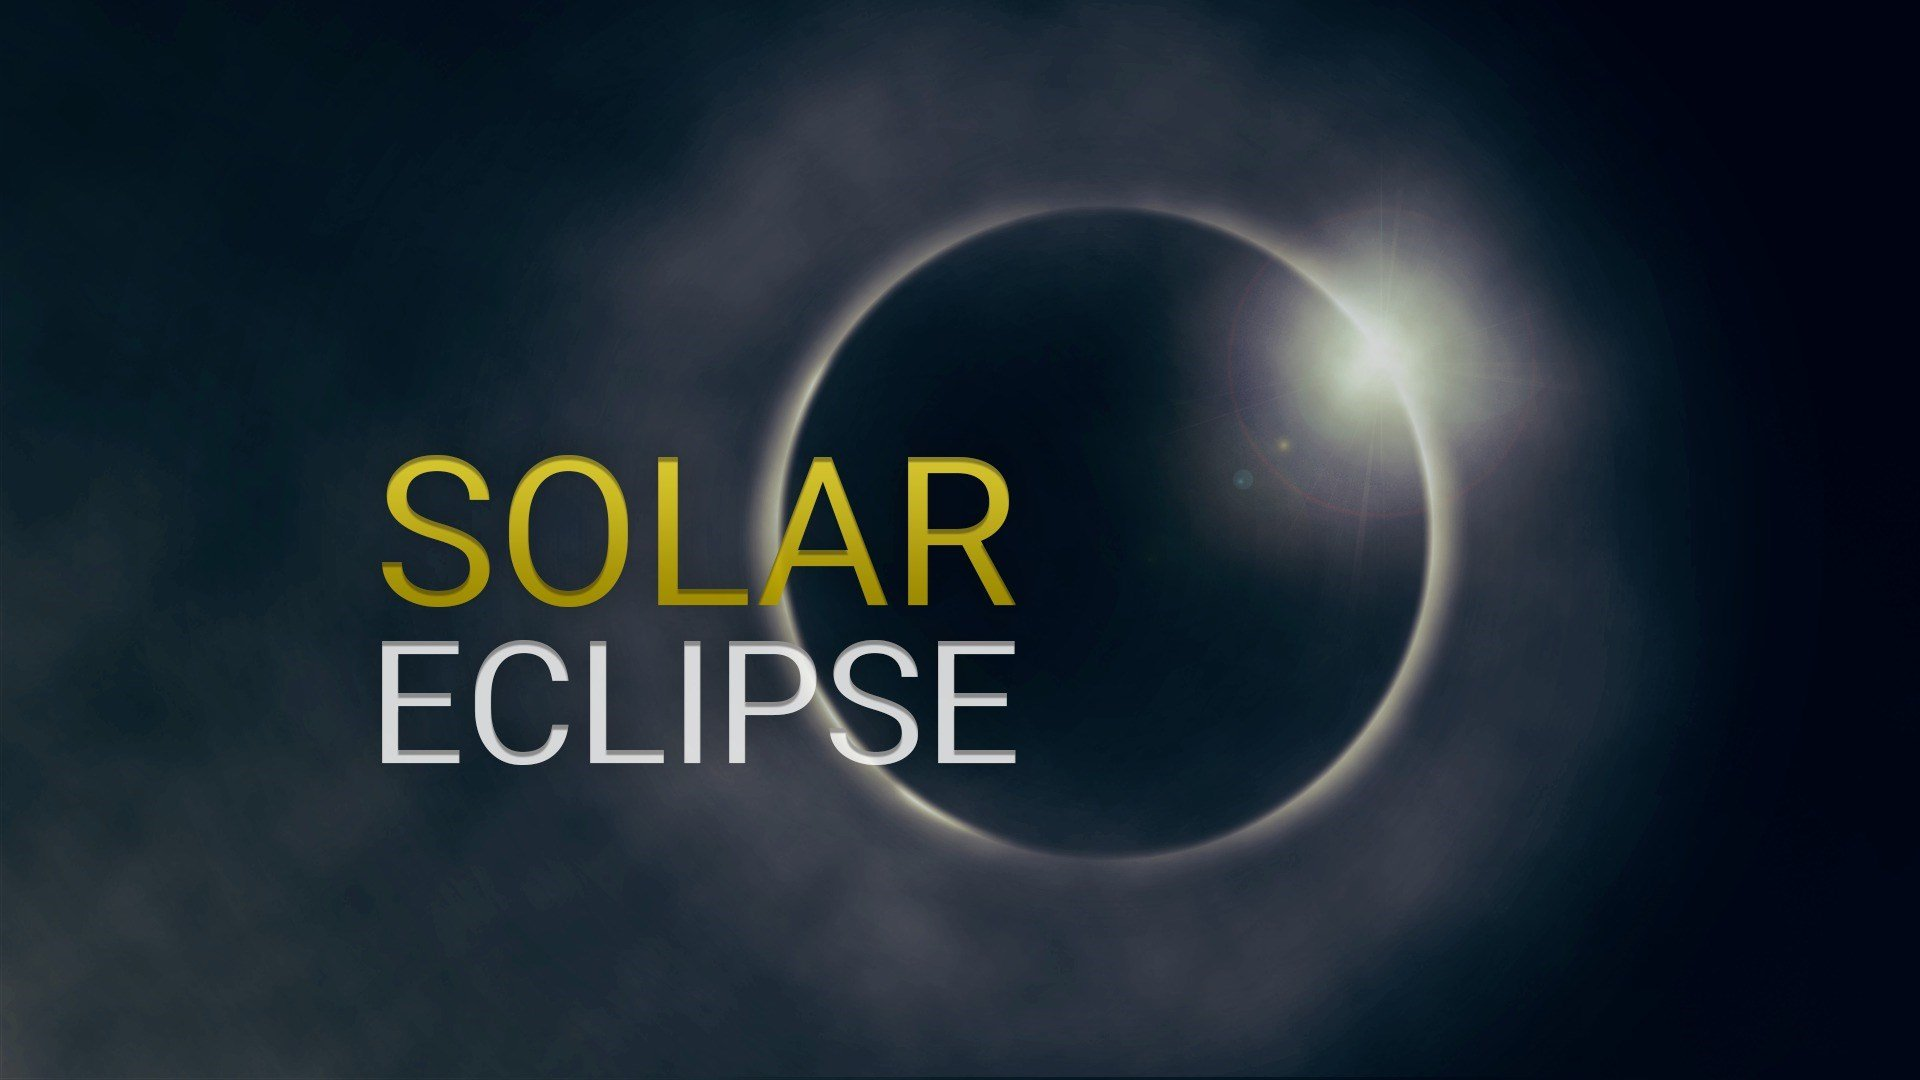 1M people expected to visit SC to view the solar eclipse